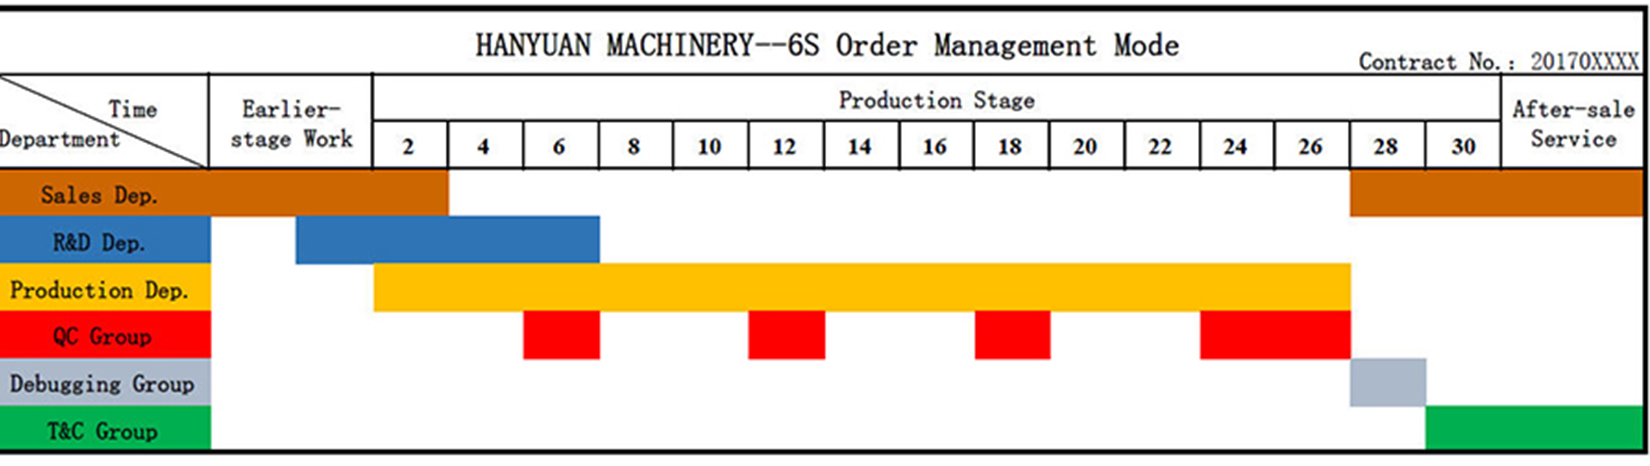 6s Order Management Mode-HANYUAN MACHINERY